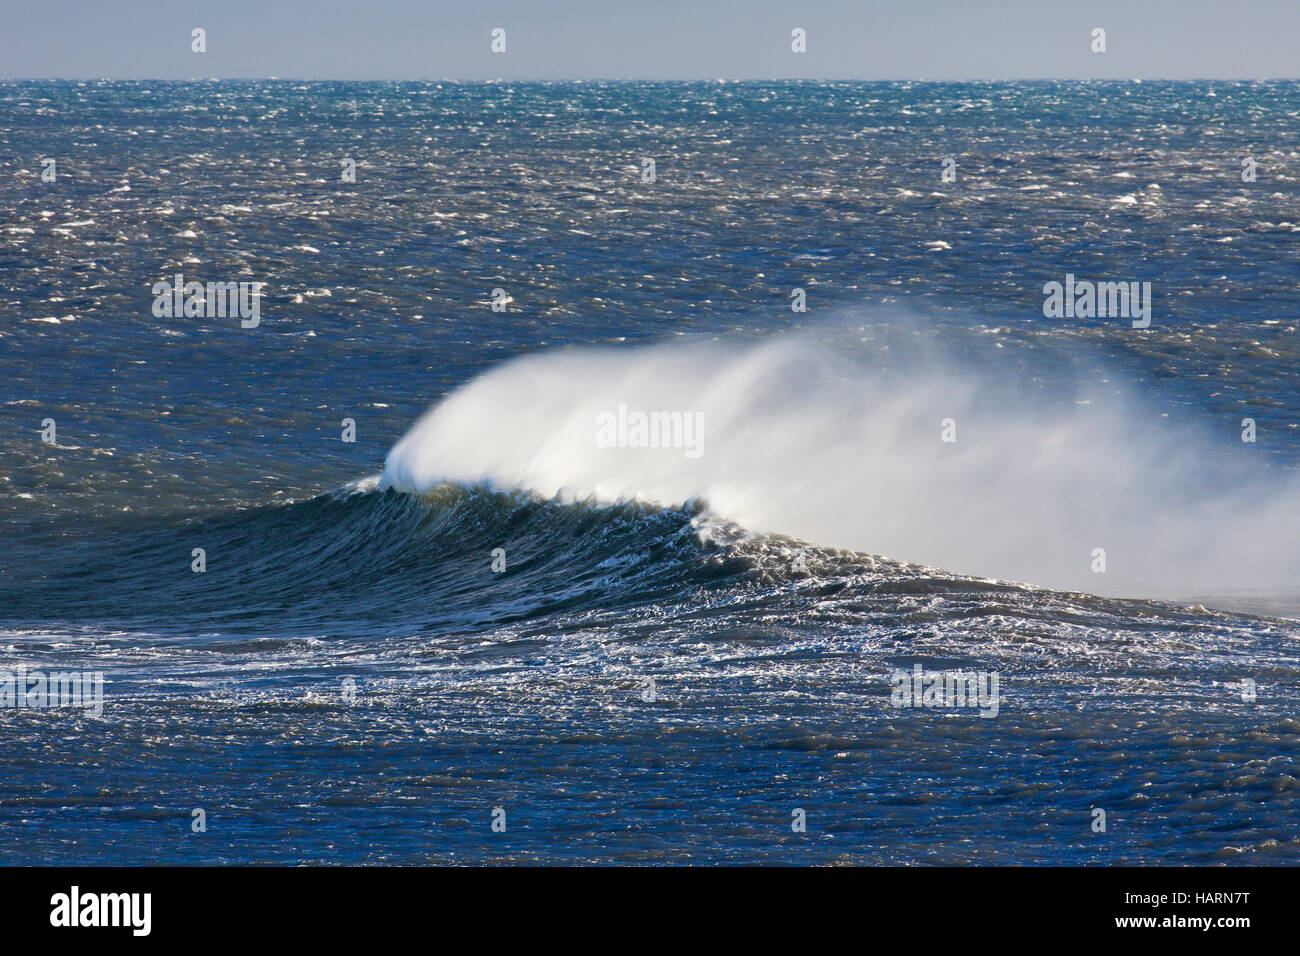 Wave crest at Arctic sea showing airborne spray and spindrift due to high winds - Stock Image